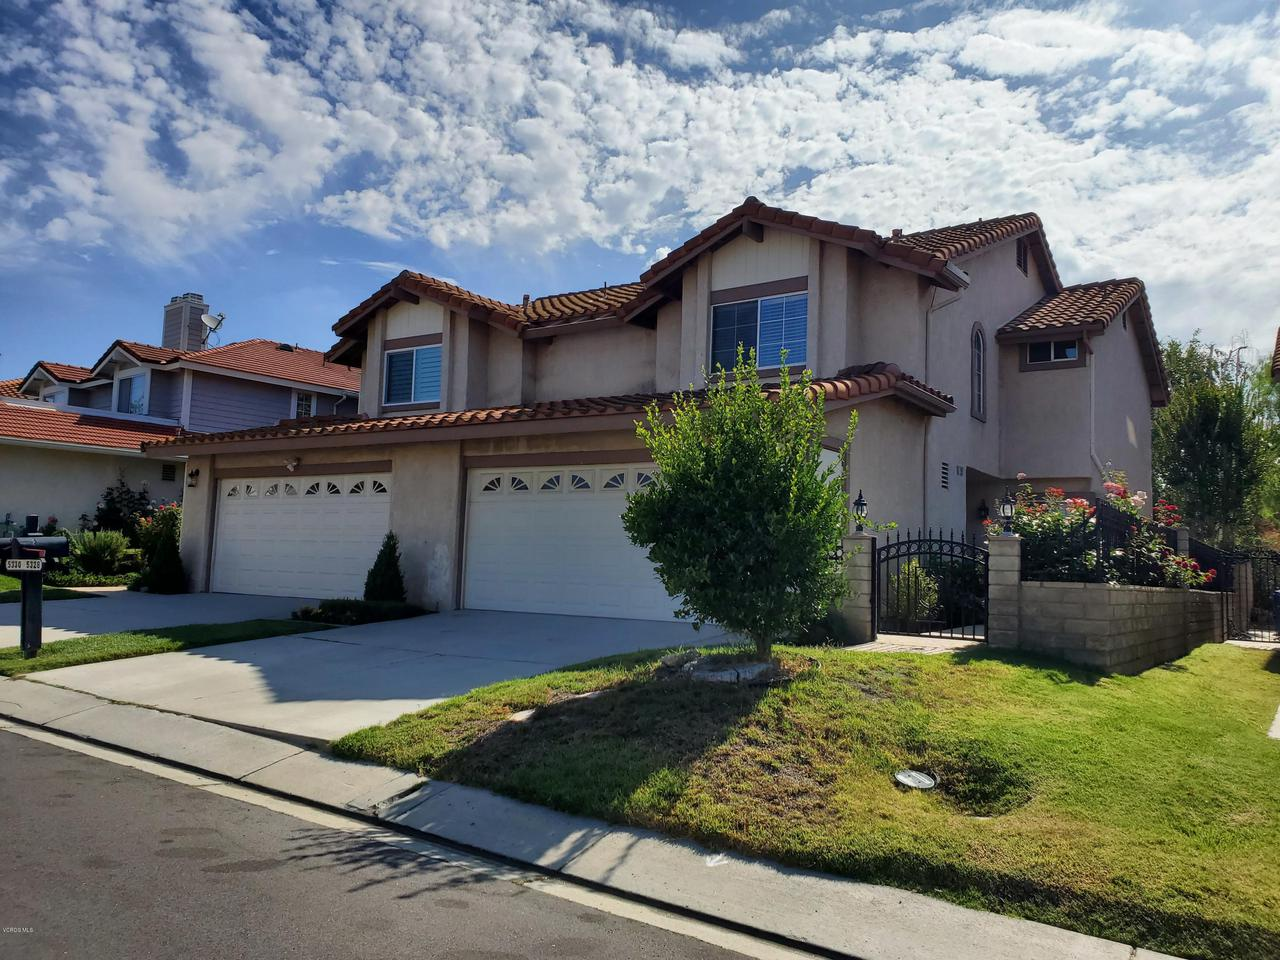 Photo of 5328 FRANCISCA WAY, Agoura Hills, CA 91301